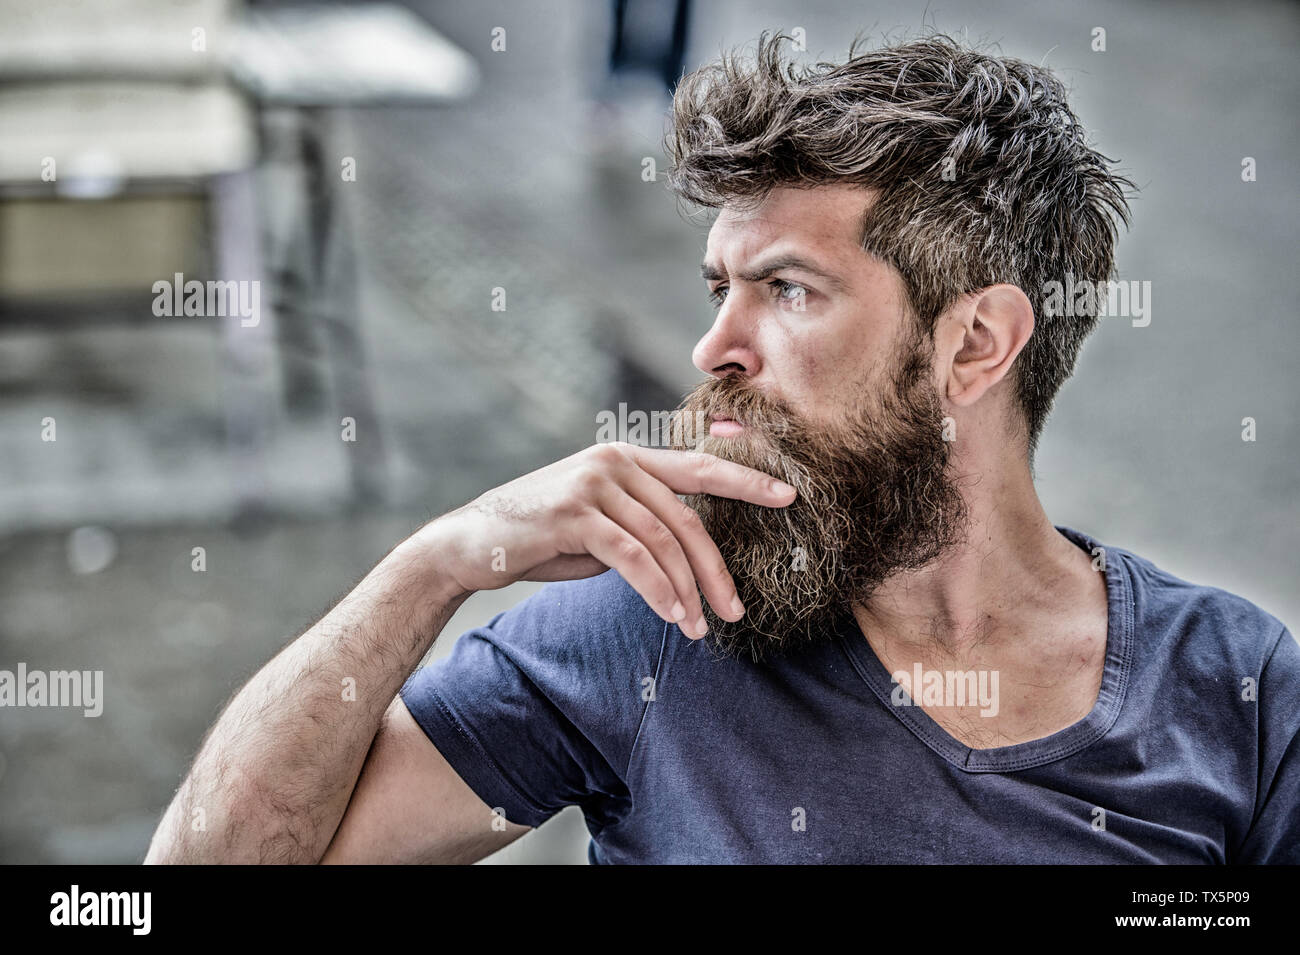 Making hard decision. Bearded man concentrated face. Hipster with beard thoughtful expression. Thoughtful mood concept. Making important life choices. Man with beard and mustache thoughtful troubled. - Stock Image